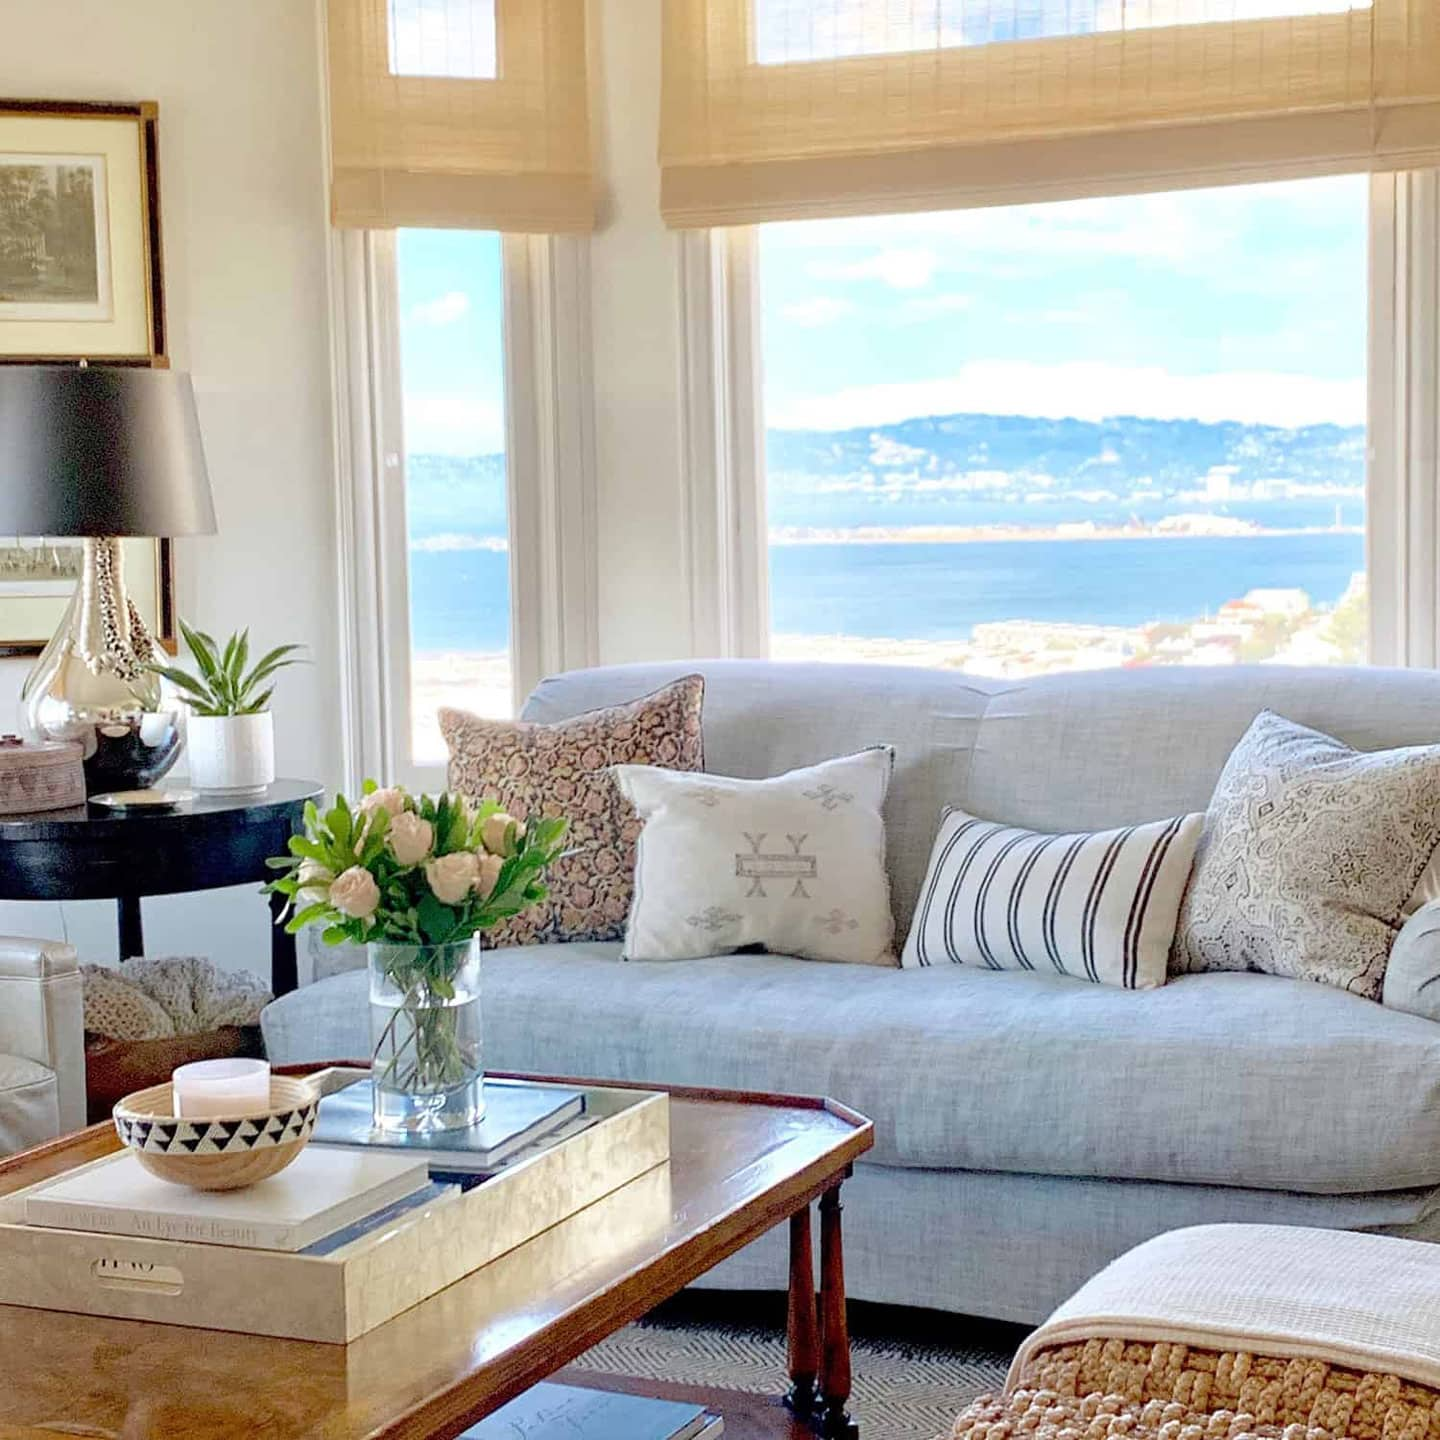 sofa with pillows. art, lamp, coffee table, large window with views